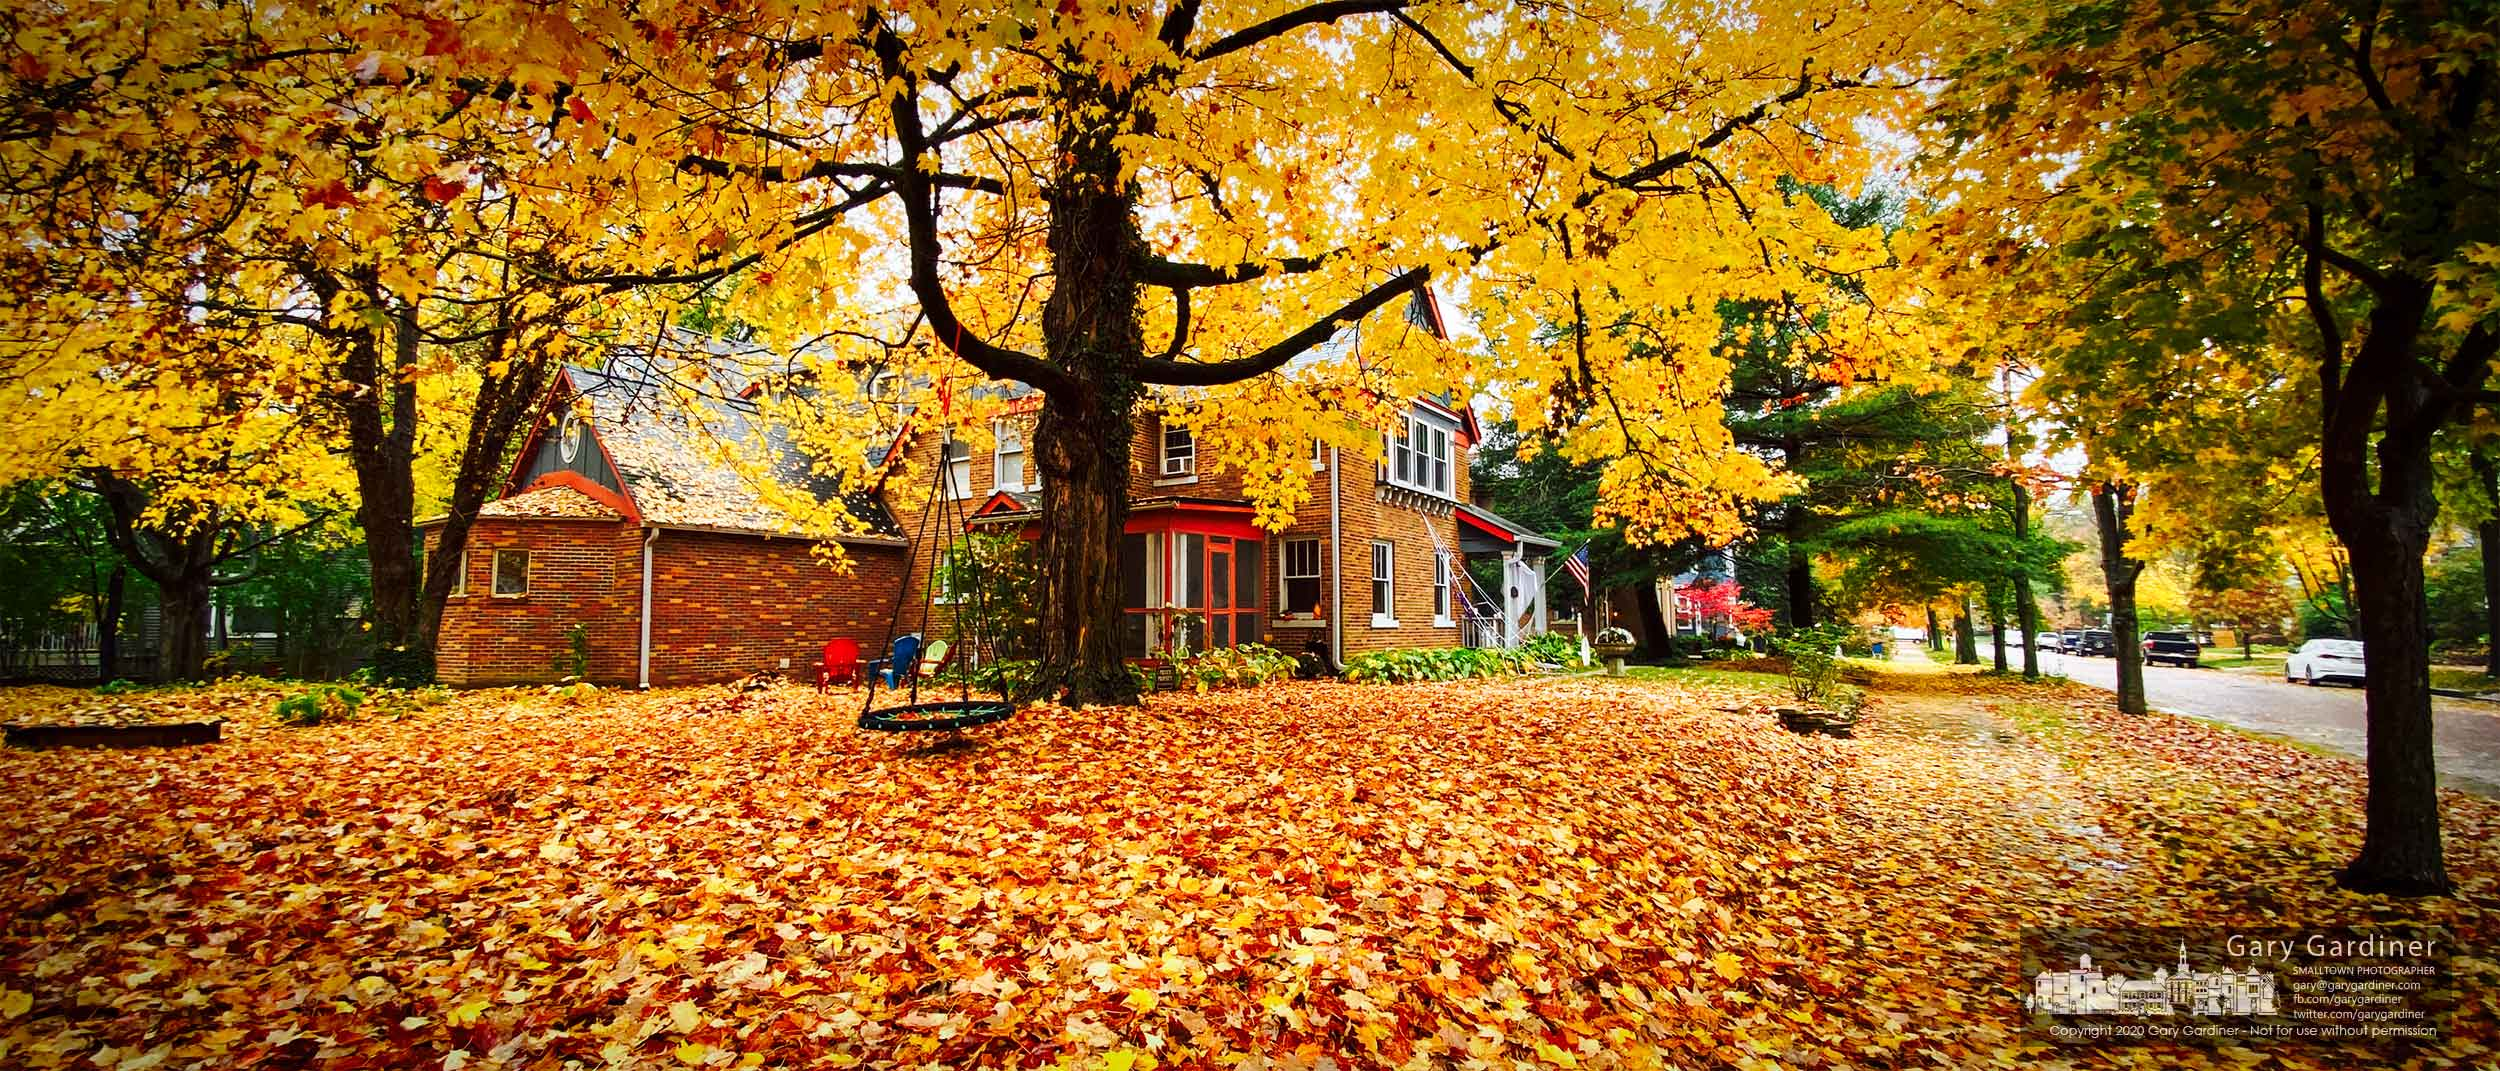 Maple tree leaves blanket the yard and sidewalk of a home on West College in Uptown Westerville. My Final Photo for Oct. 29, 2020.